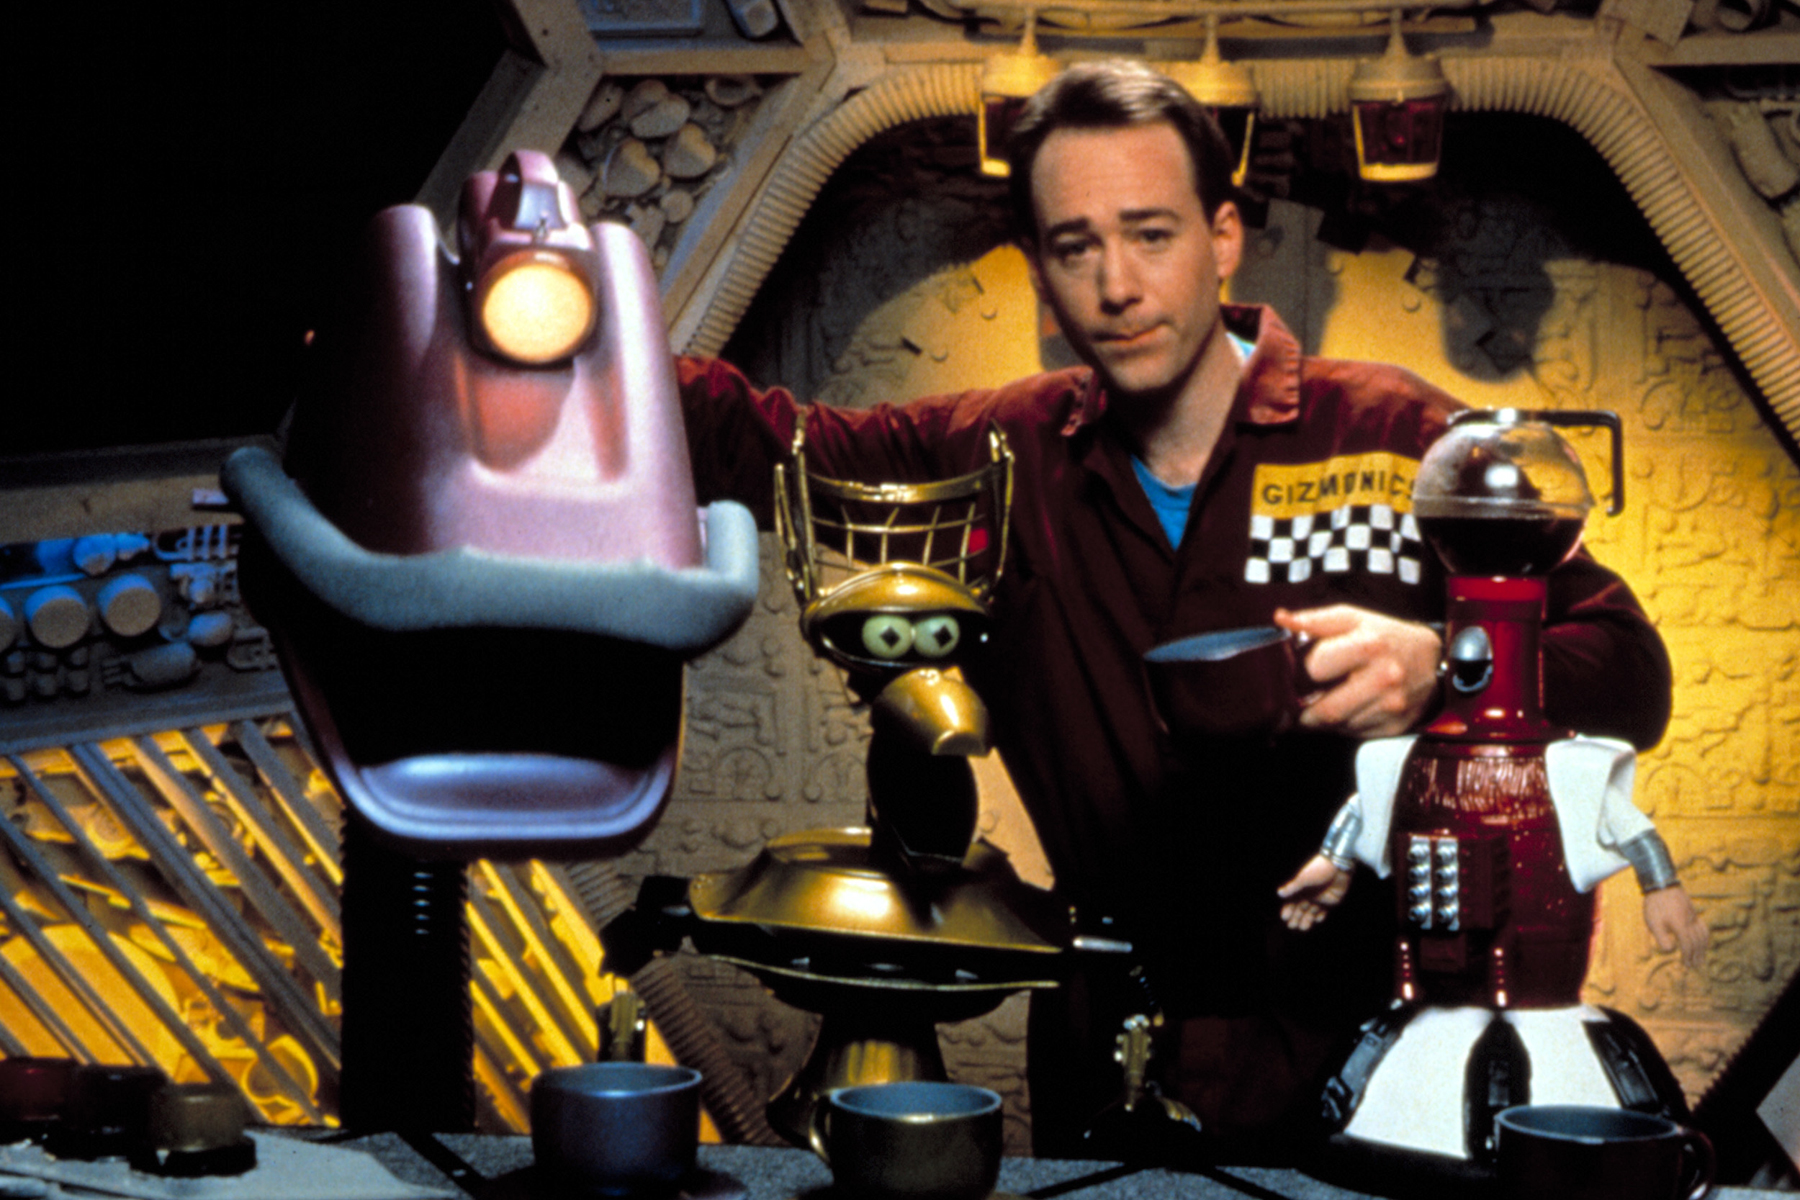 'Mystery Science Theater 3000' at 30: How a Cult TV Show Changed Pop Culture